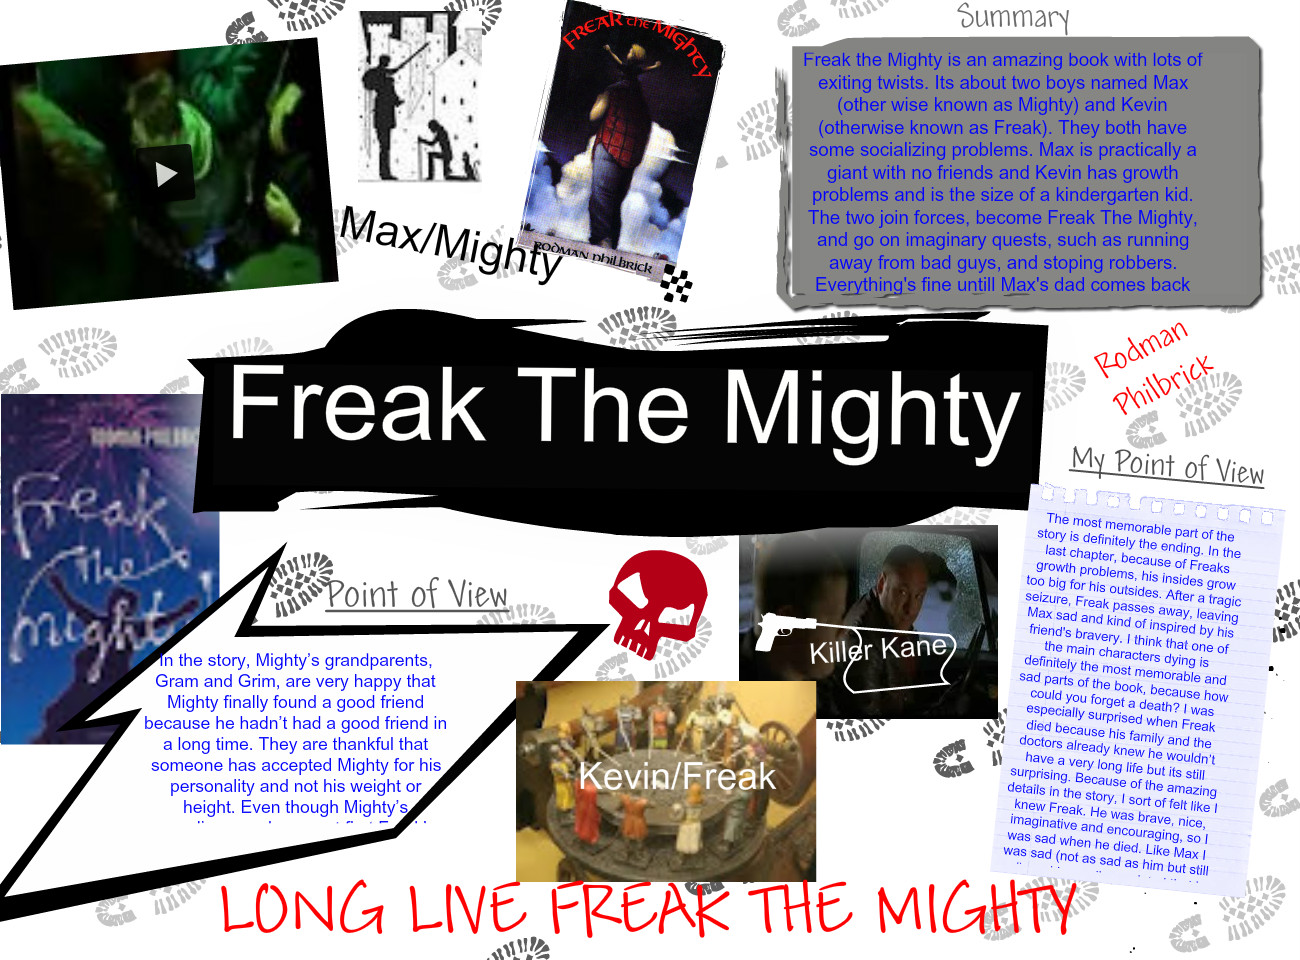 freak the mighty and the mighty Adapted from the novel, freak the mighty, the film explores a building of trust and friendship kevin, an intelligent guy helps out maxwell to improve his reading skills in return, kevin wants maxwell to take him out places since he is not allowed out unauthorized.